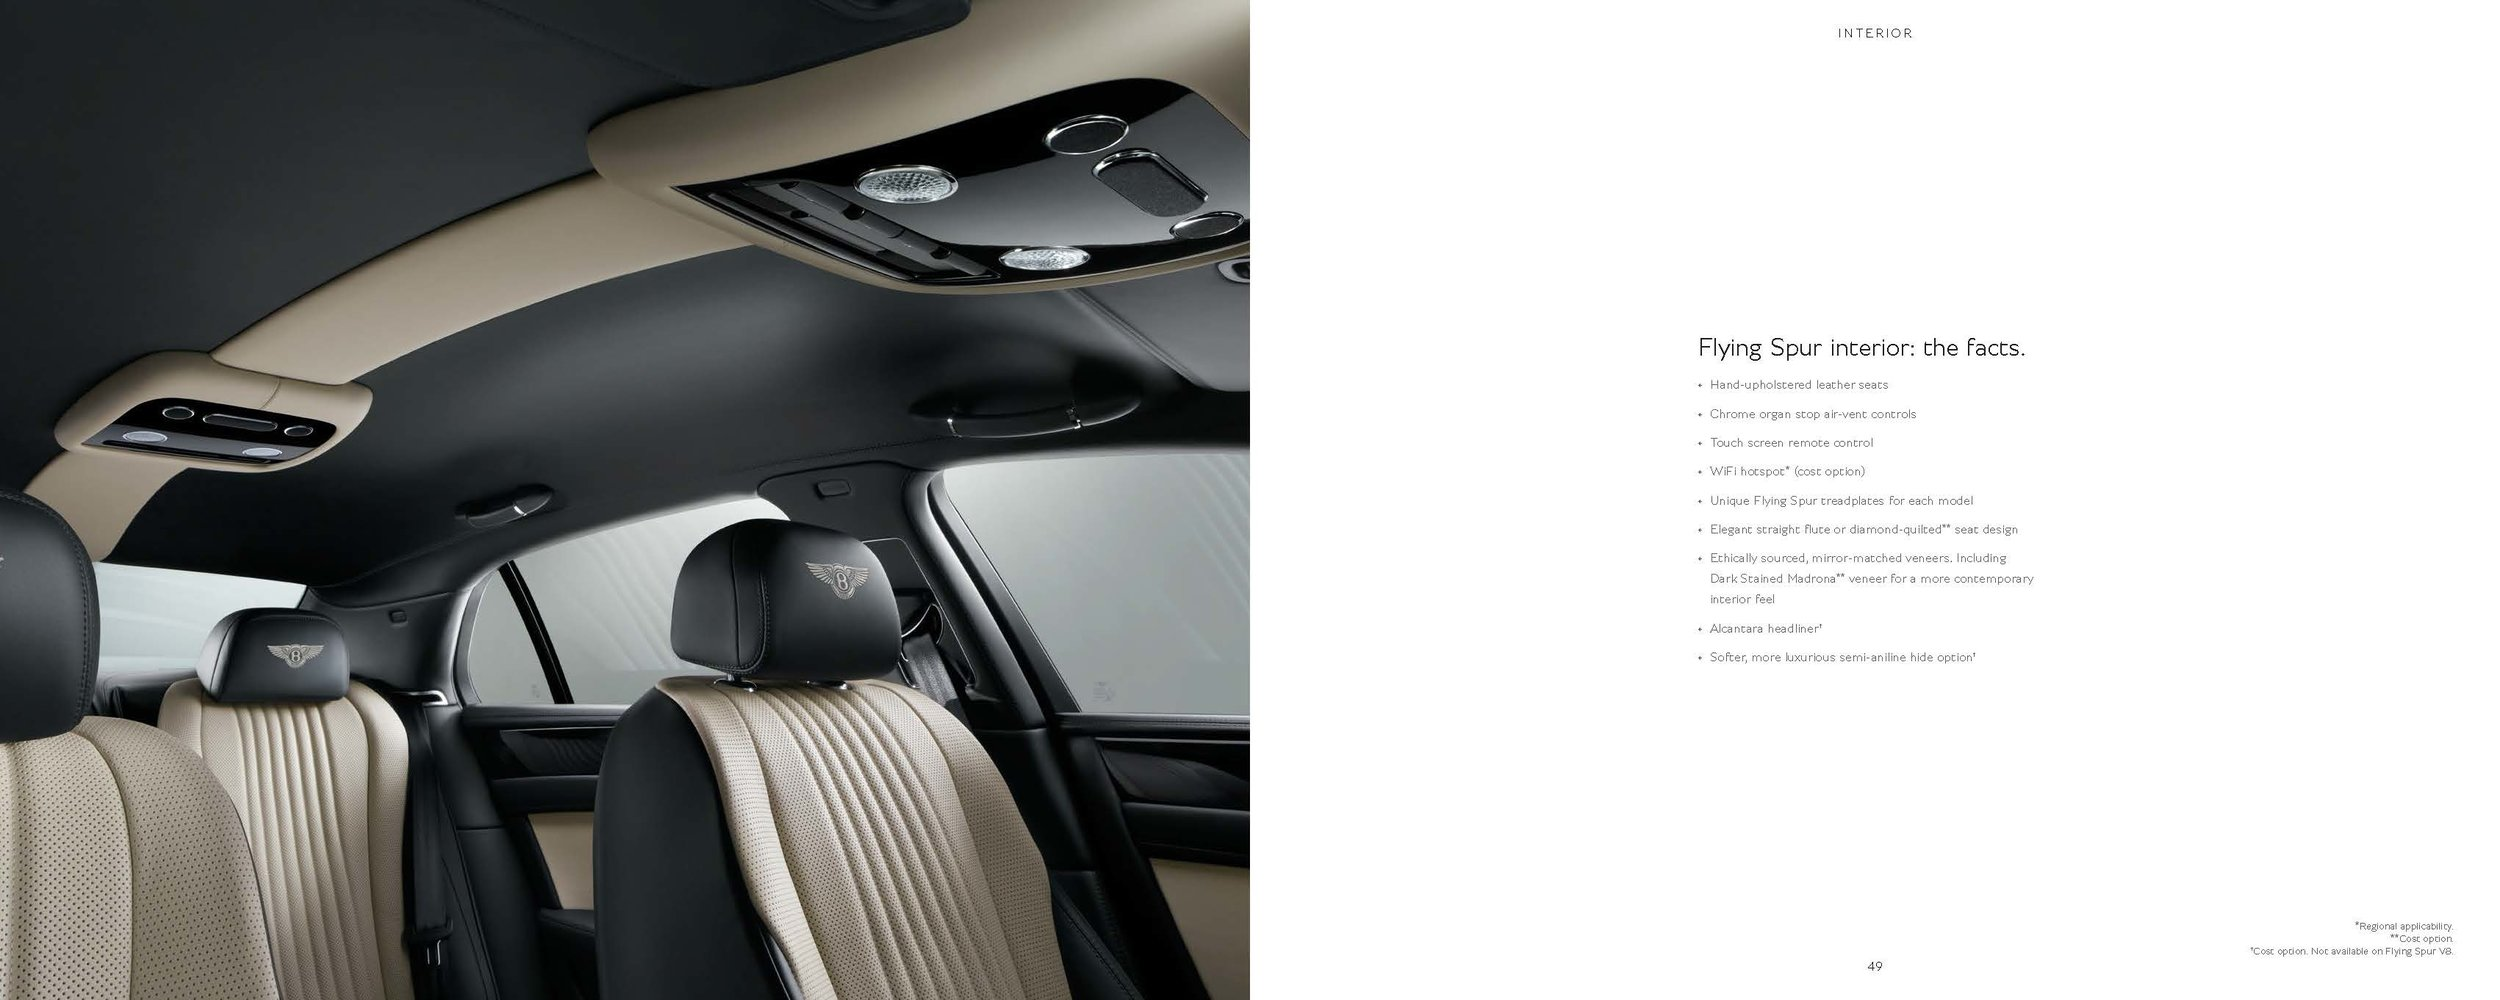 BENFS-16-012_Flying Spur Customer Book Cover & Contents CLEAN_v15_Page_27.jpg